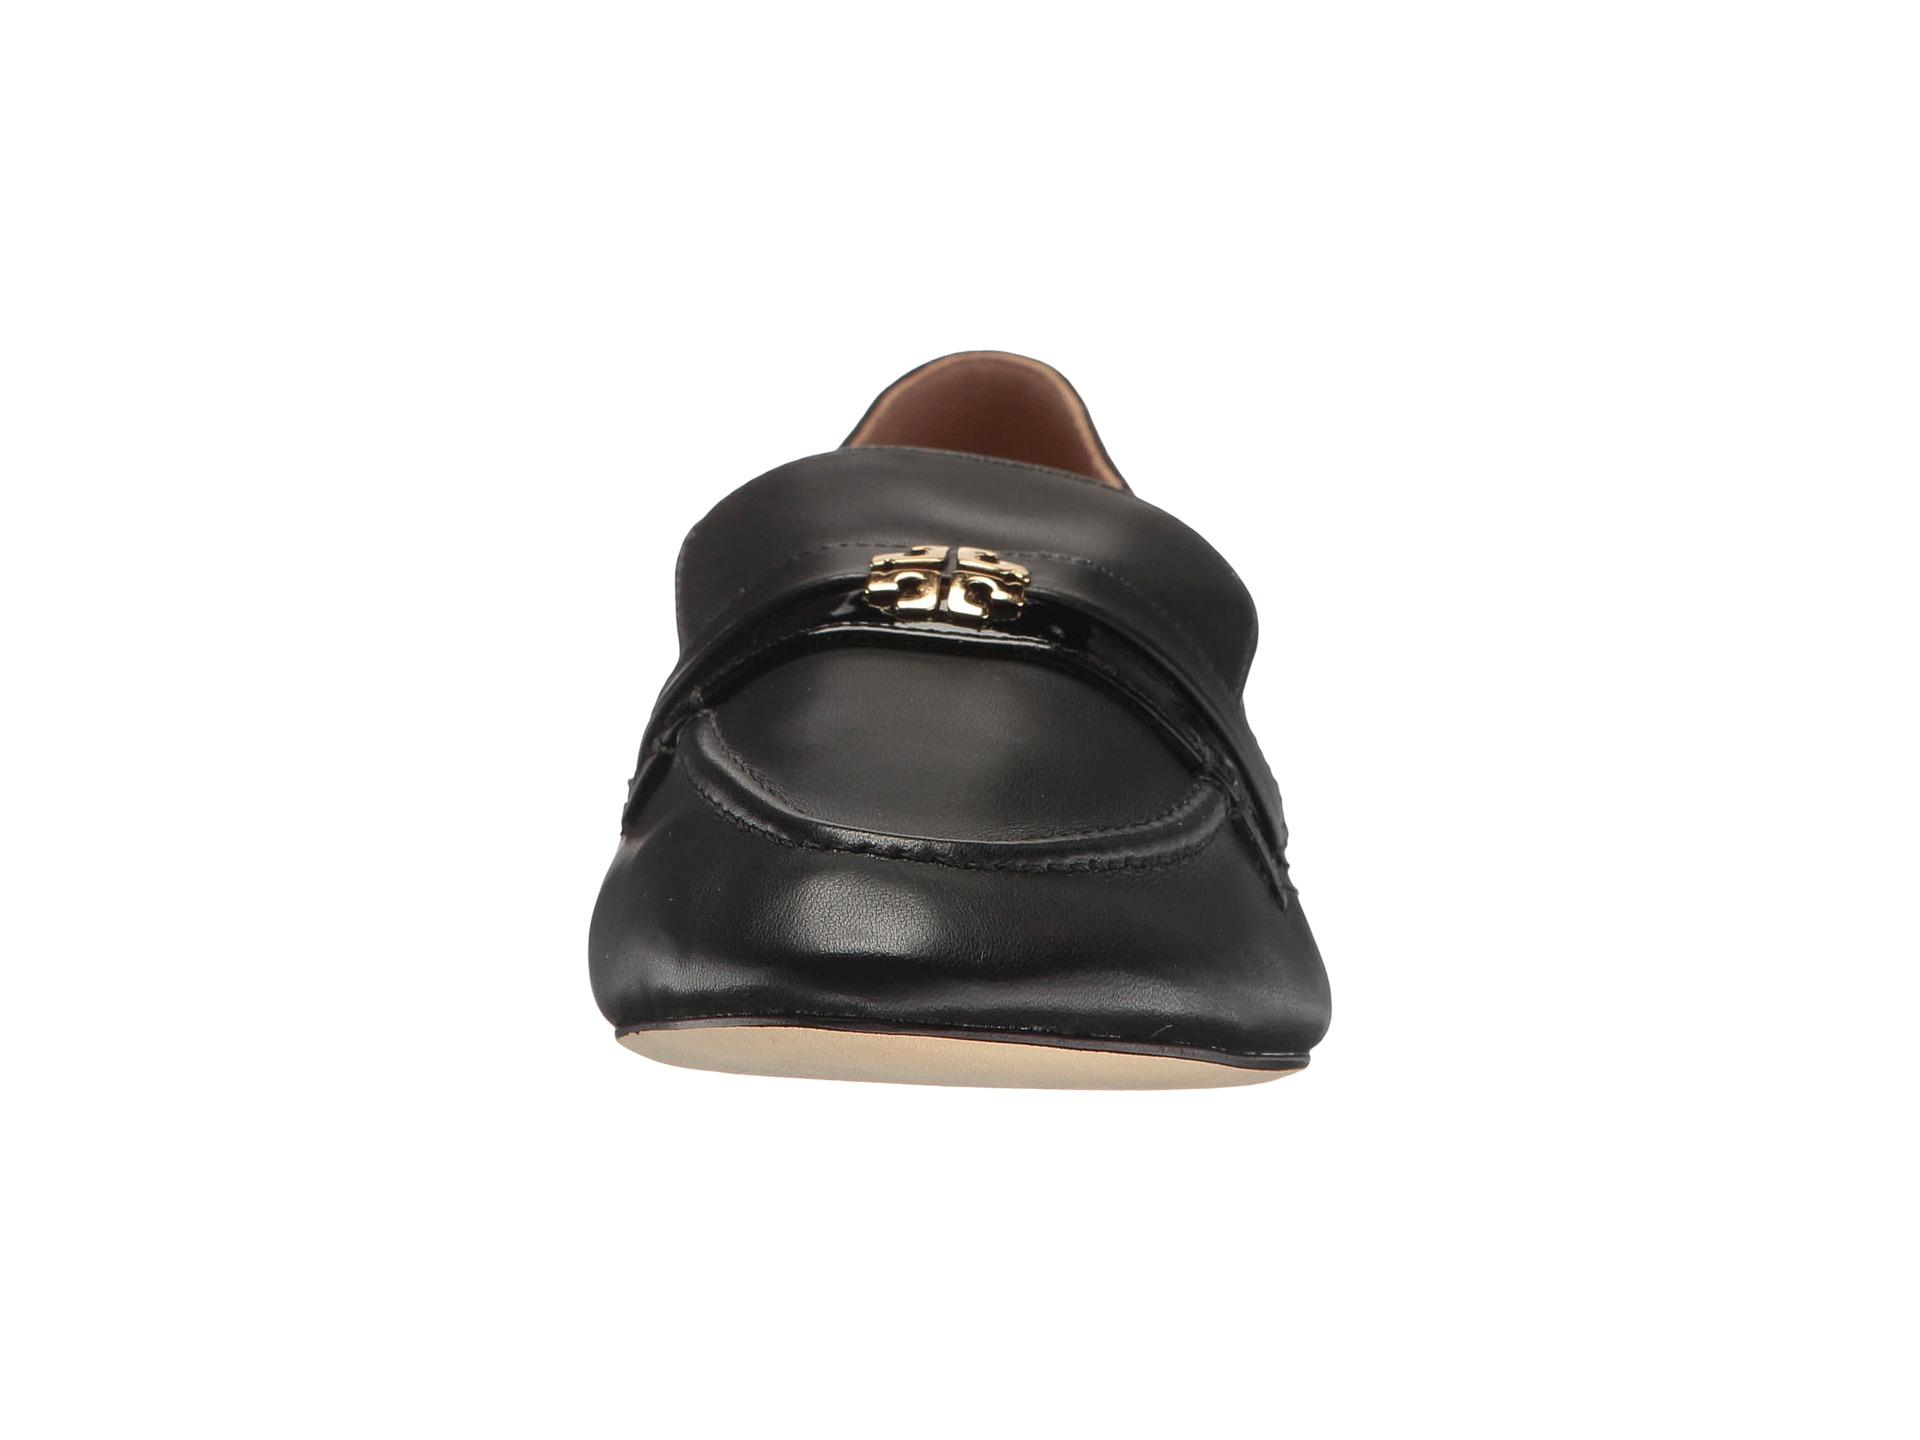 2cc3cde34a7c2 Lyst - Tory Burch Jolie Loafer in Black